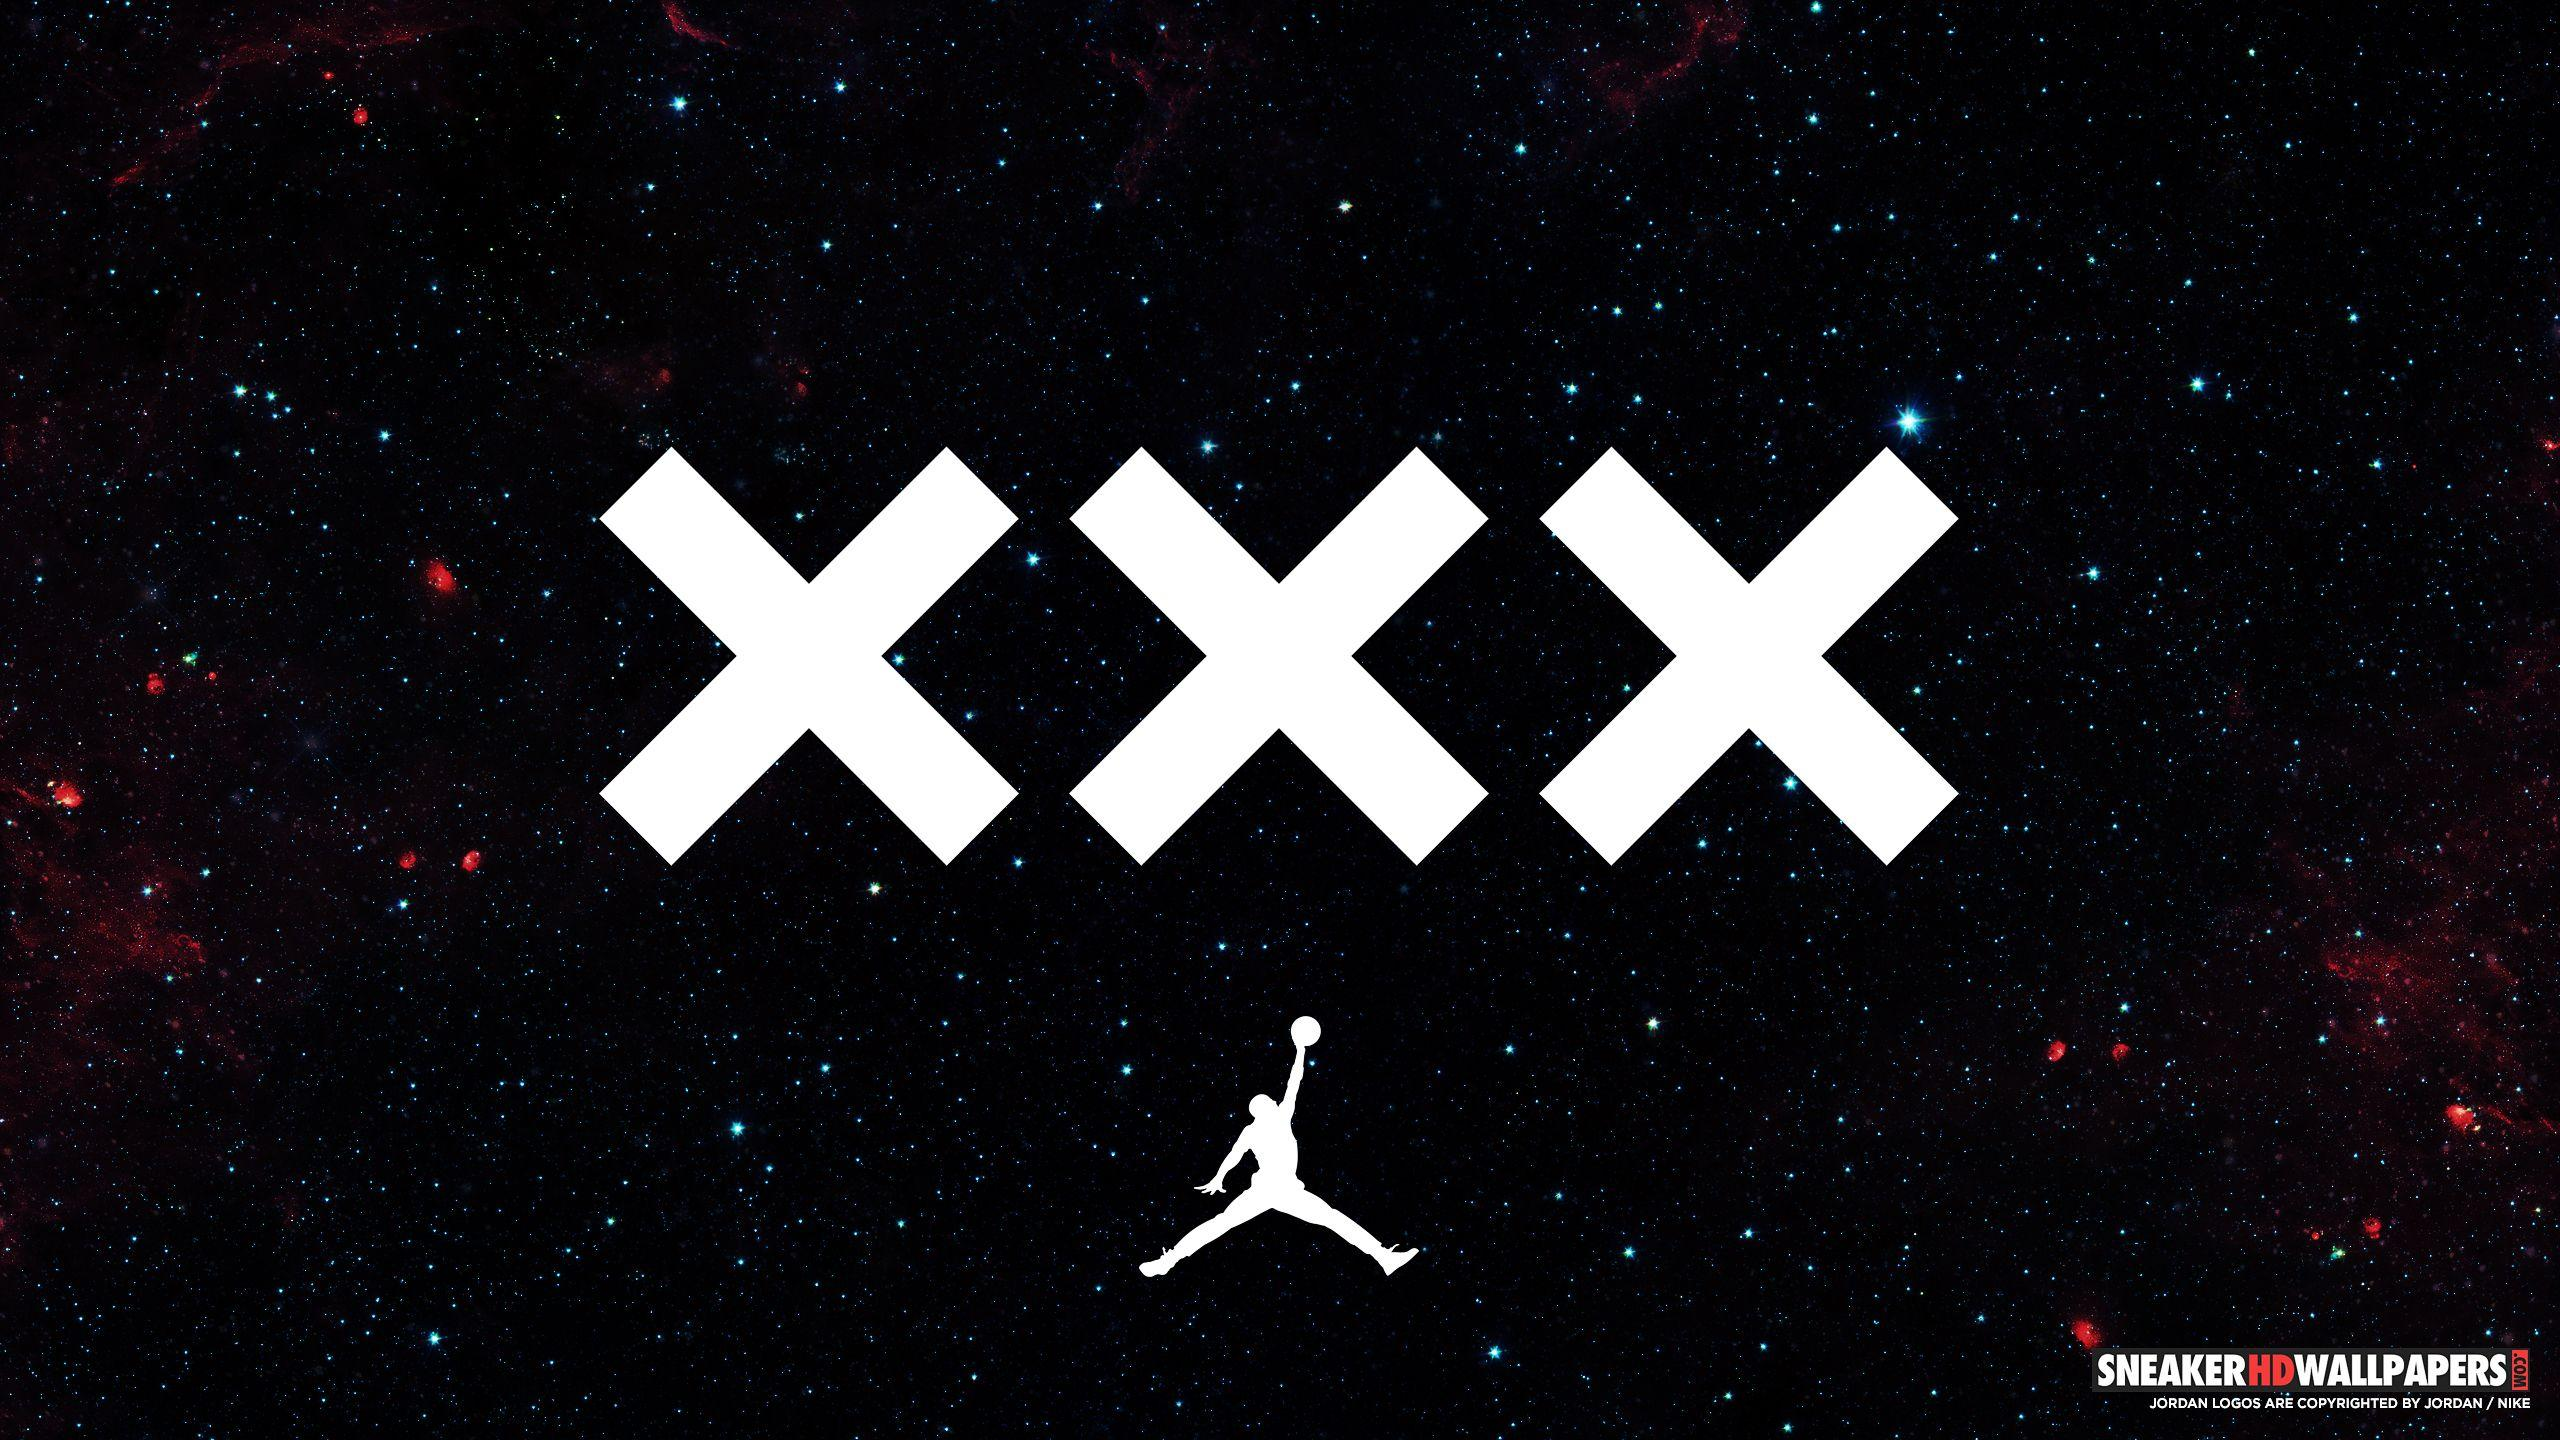 Air Jordan Wallpapers - Wallpaper Cave